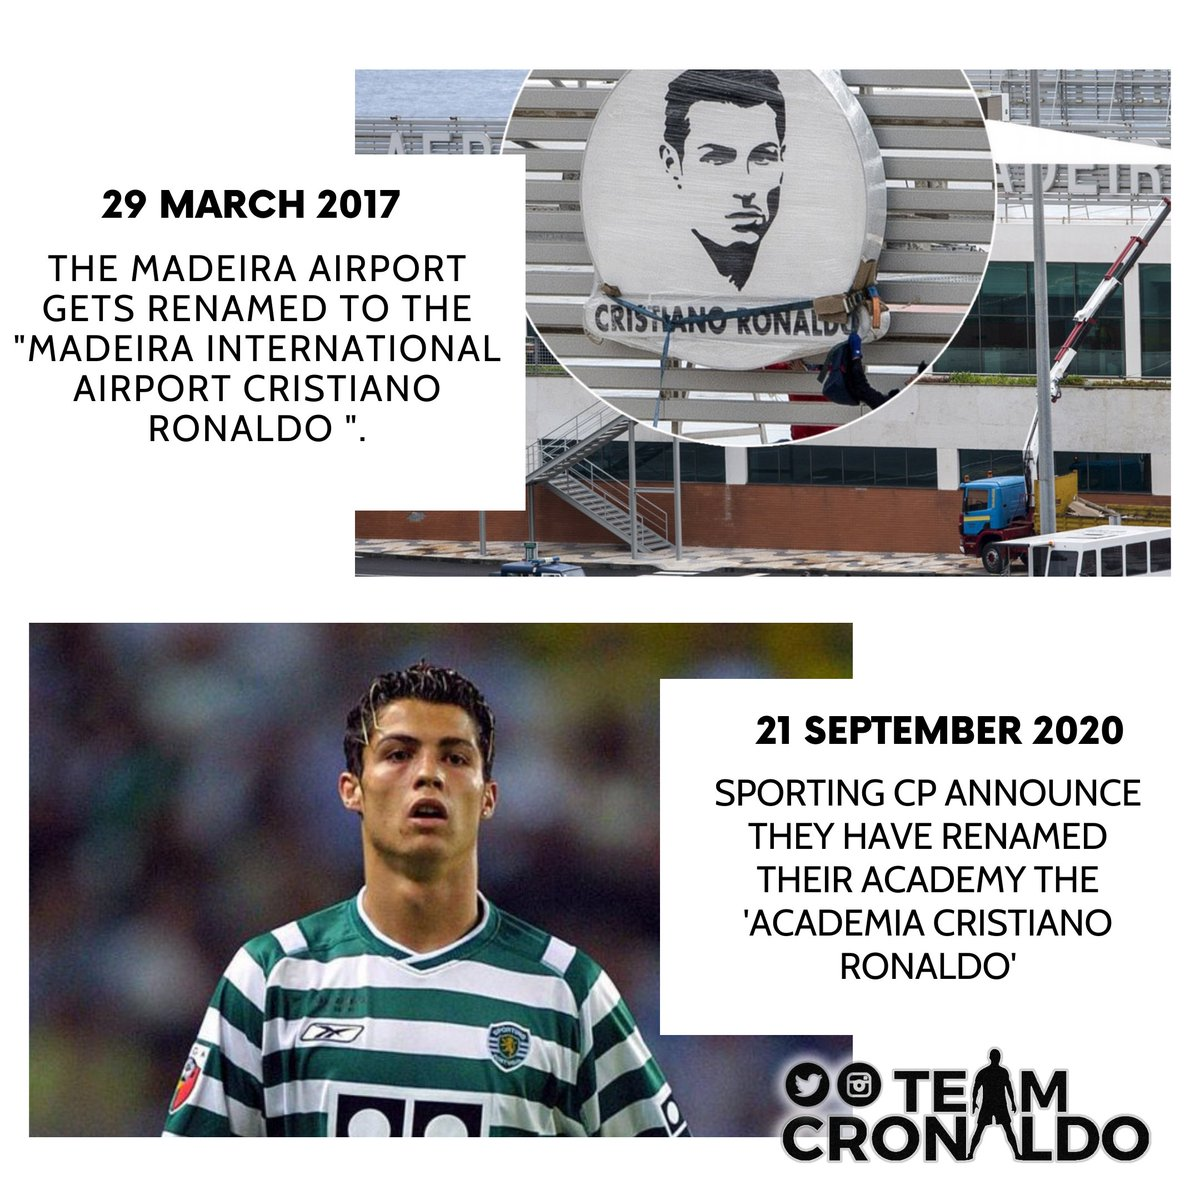 - Madeira Airport ☑ - Sporting CP academy ☑  Cristiano Ronaldo is much more than a football player. Living legend. https://t.co/offtuHiNOq